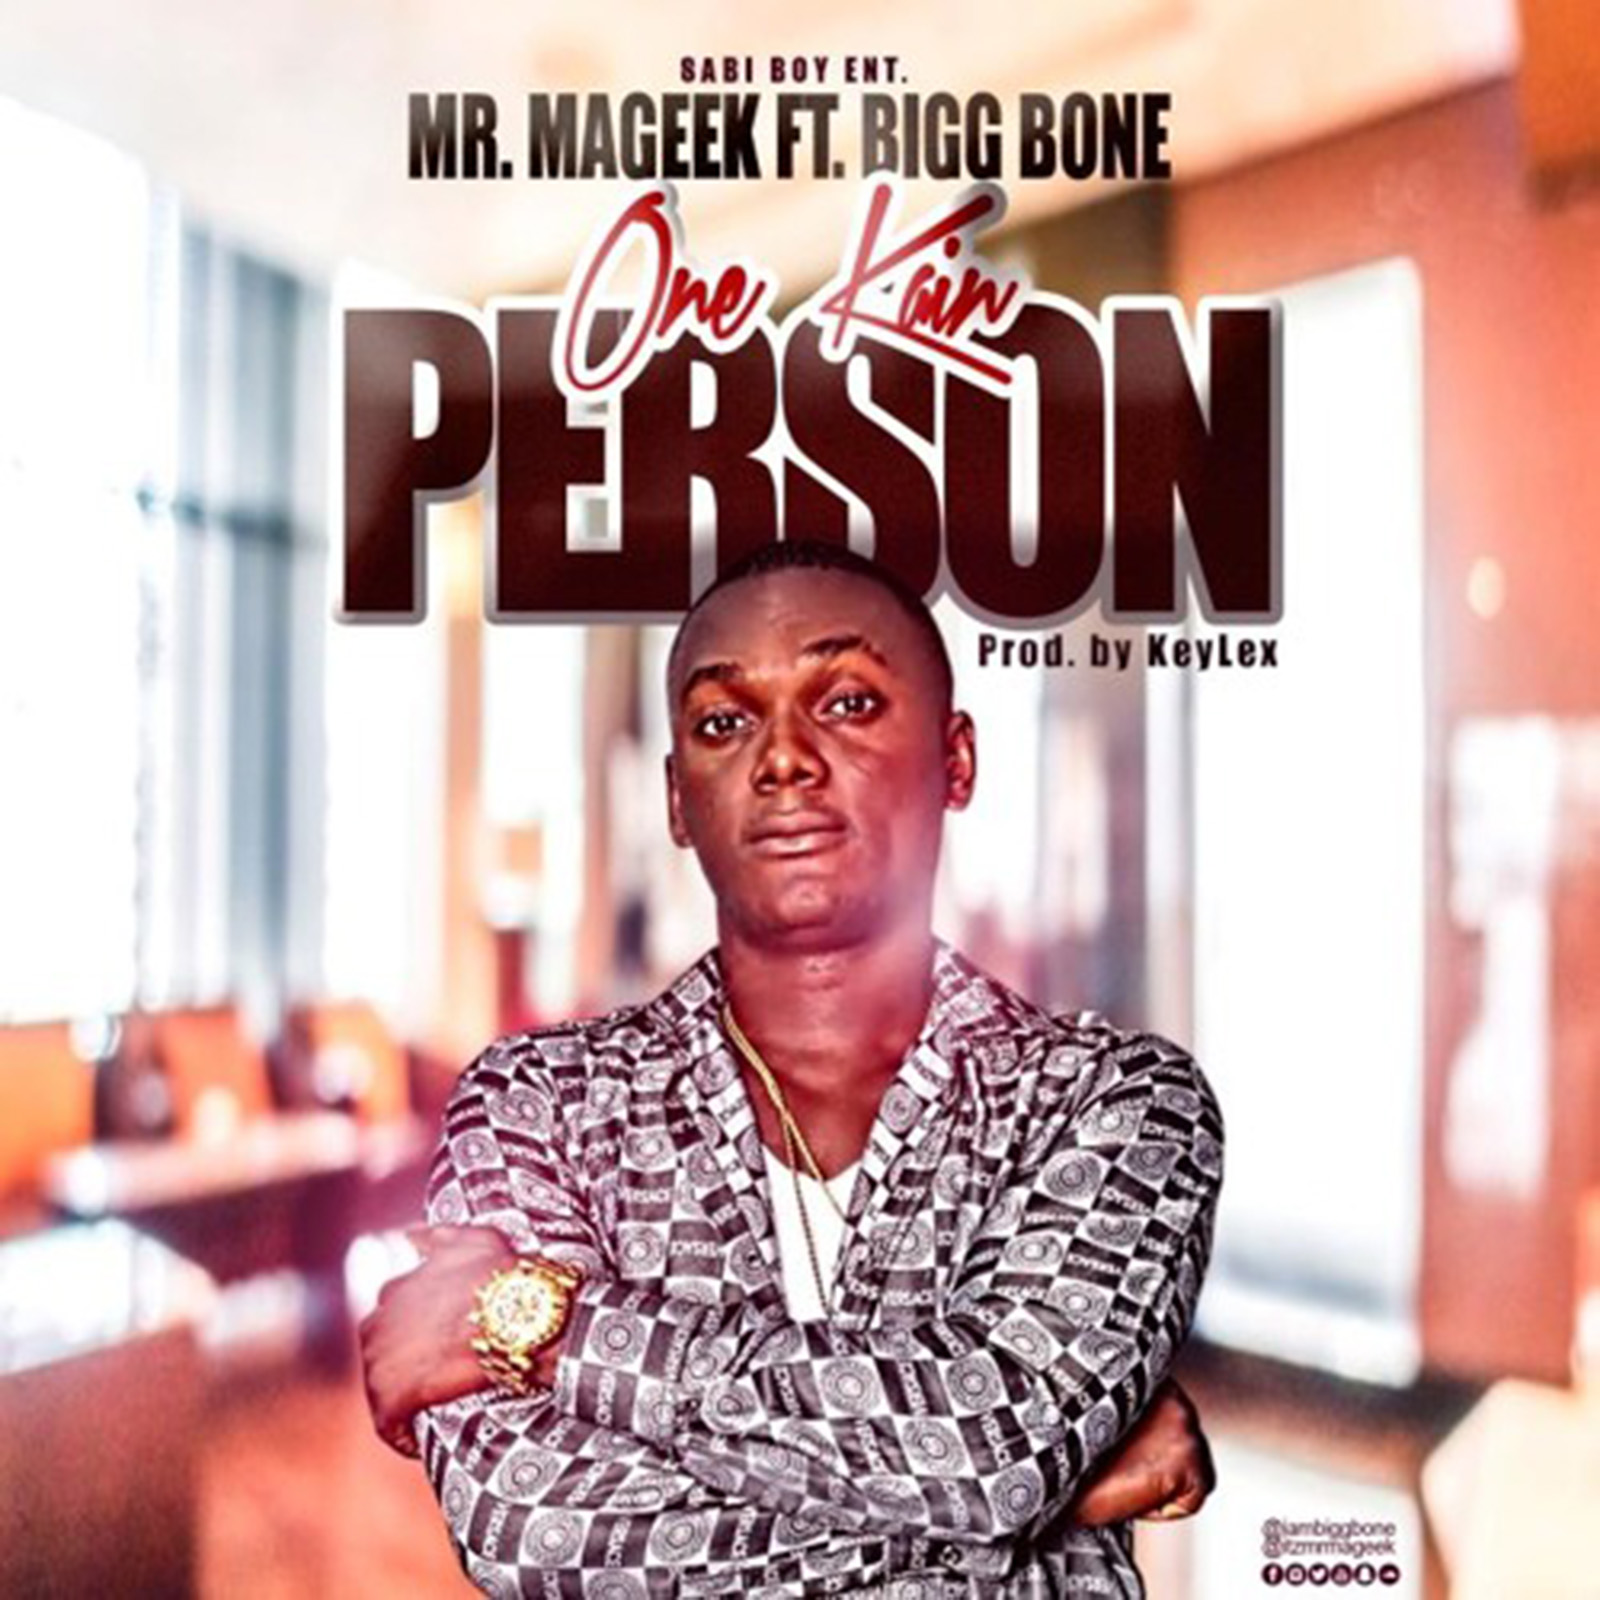 One Kain Person by Mr. Mageek feat. Bigg Bone